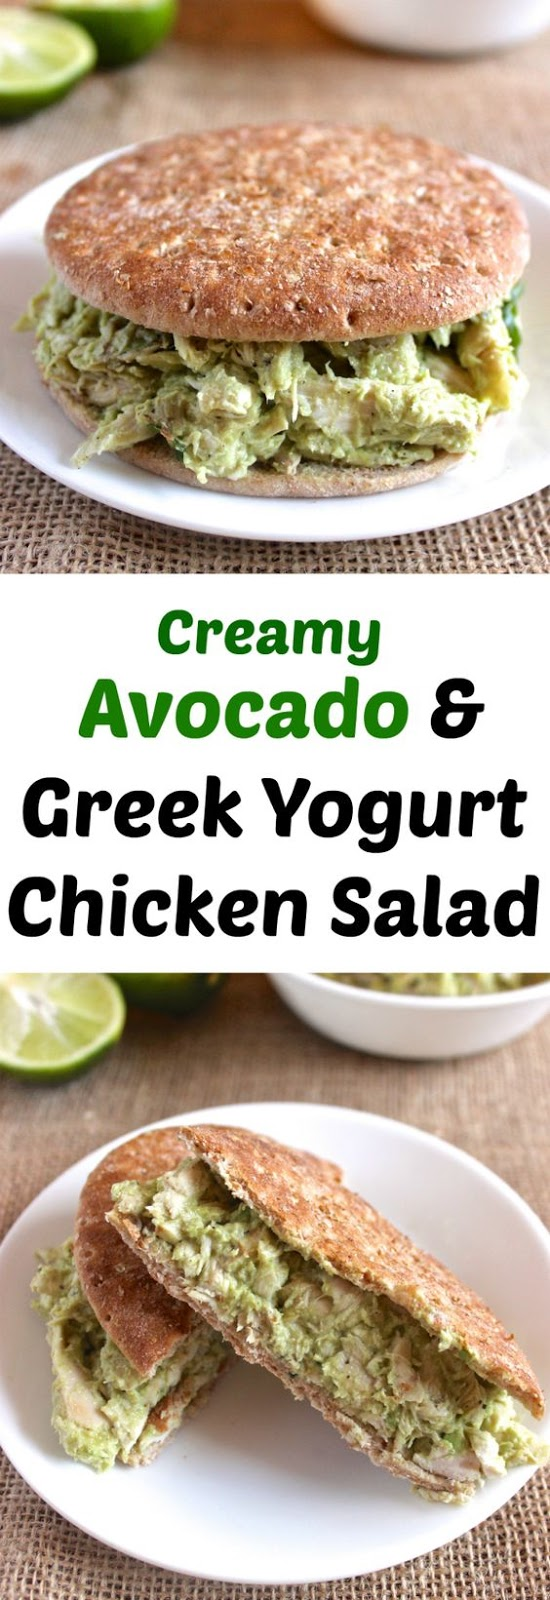 Creamy Avocado Greek Yogurt Chicken Salad